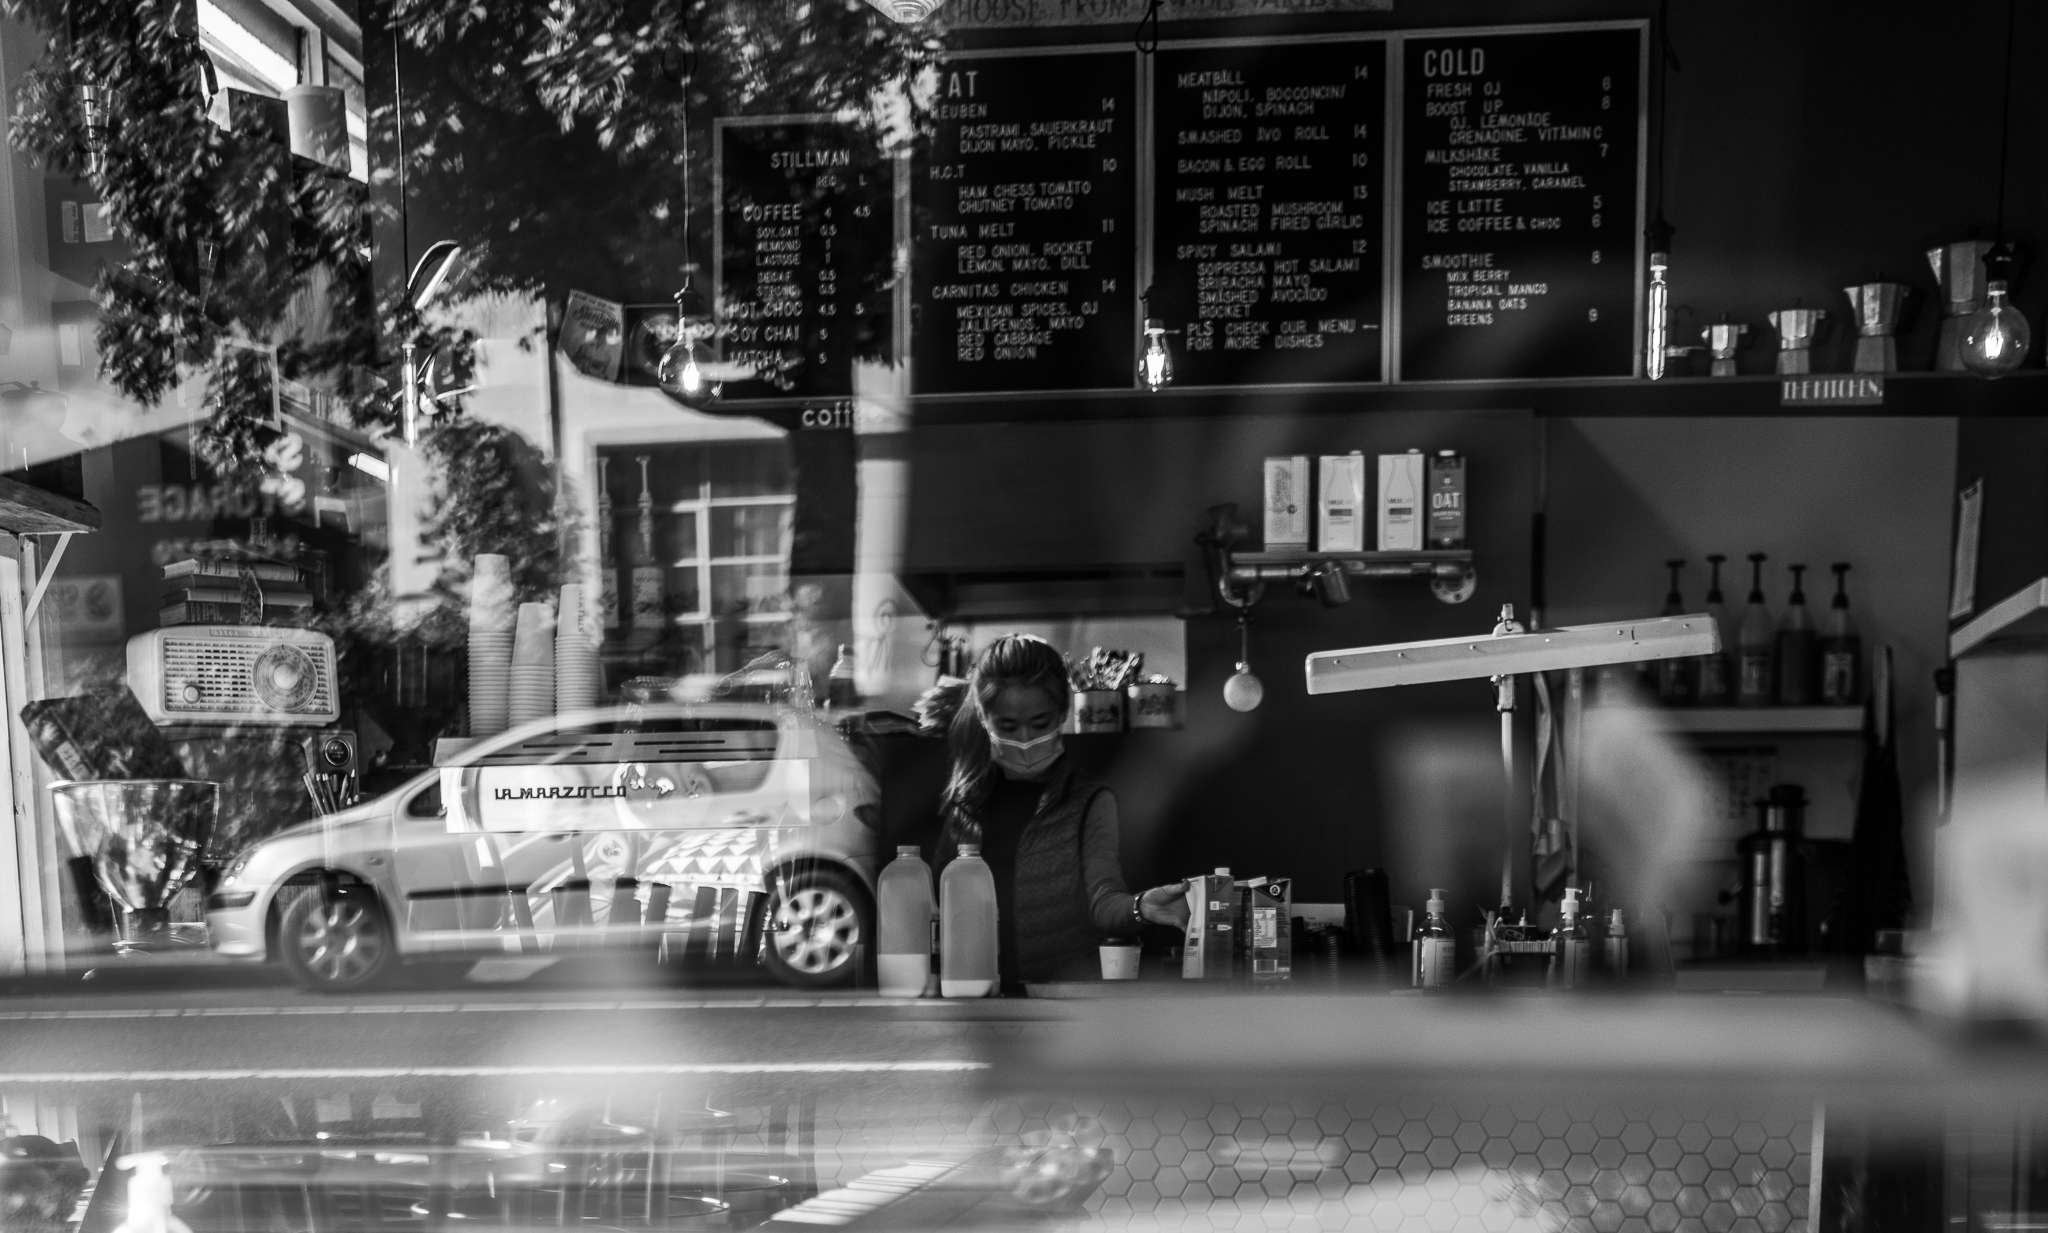 The dPS Weekly Photography Challenge - The Street